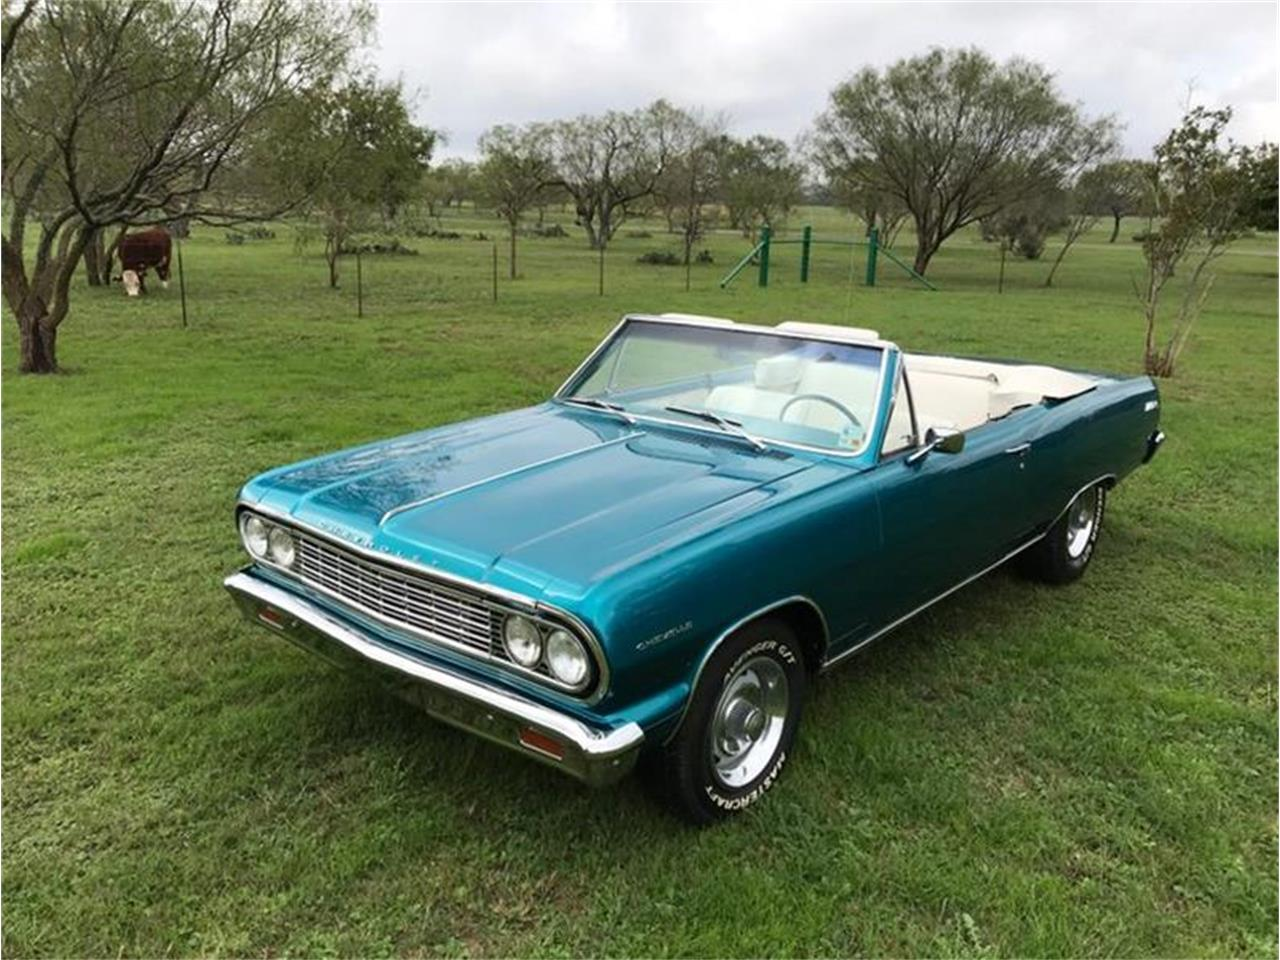 1964 Chevrolet Chevelle for sale in Fredericksburg, TX – photo 43